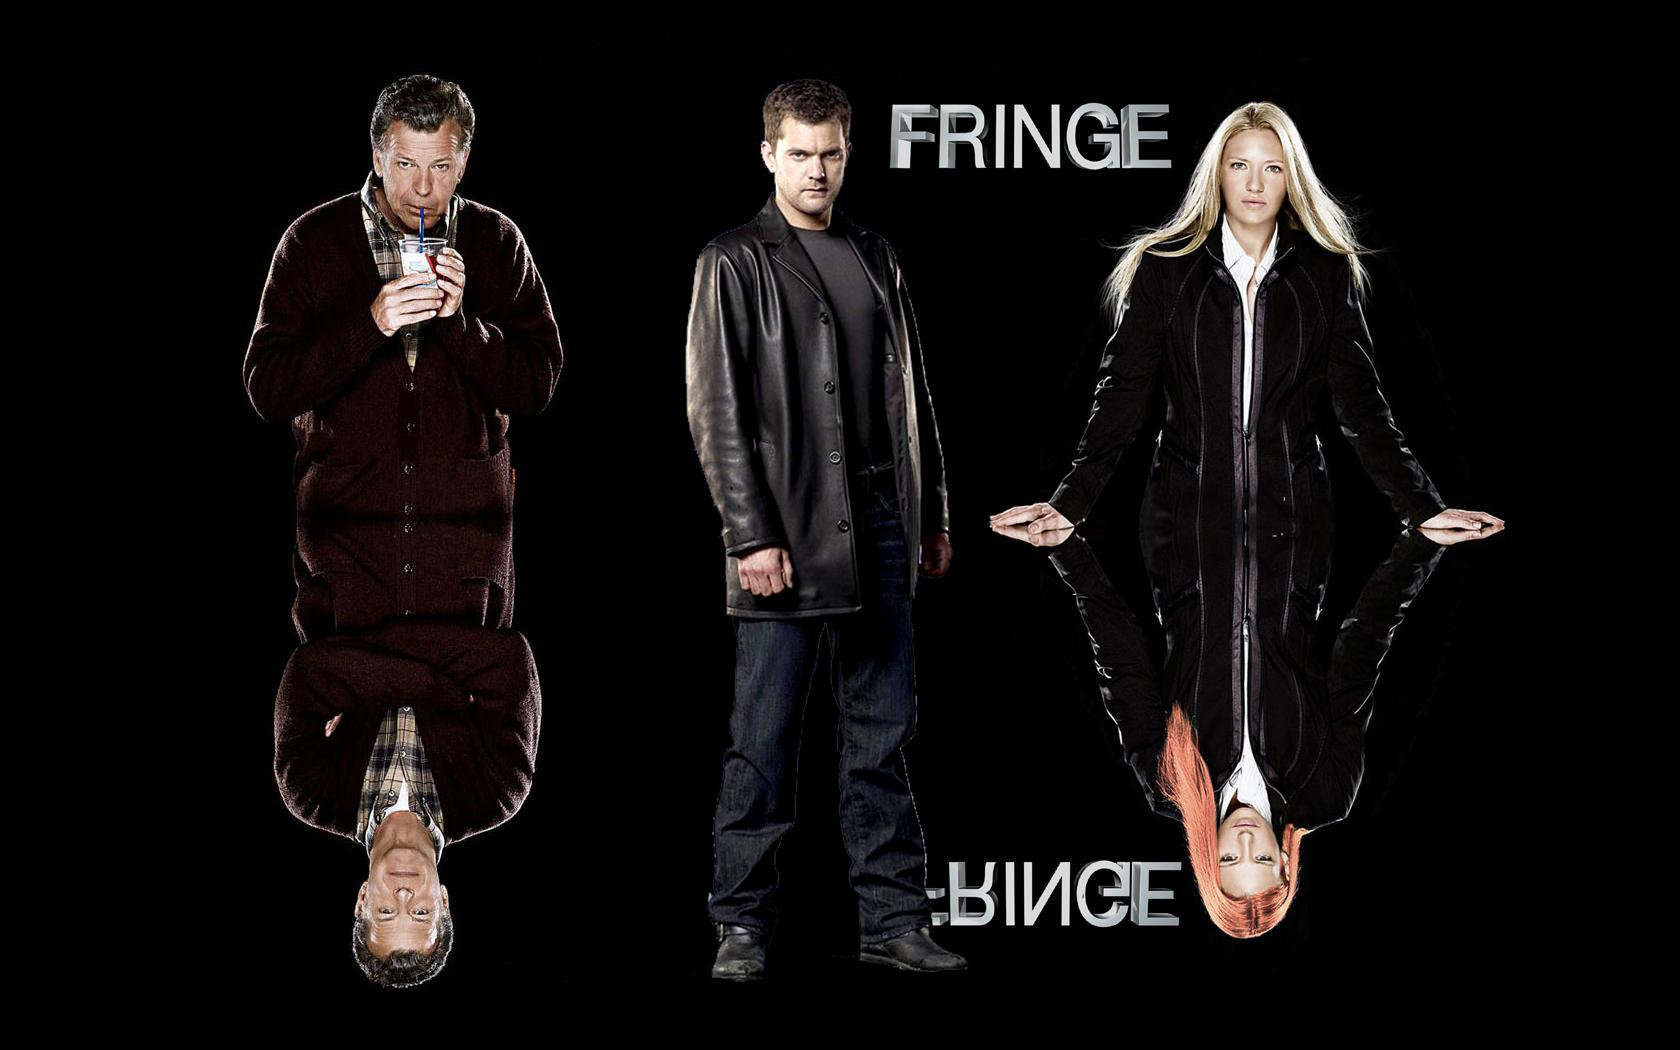 TV Fringe Wallpaper 1680x1050 TV Fringe 1680x1050